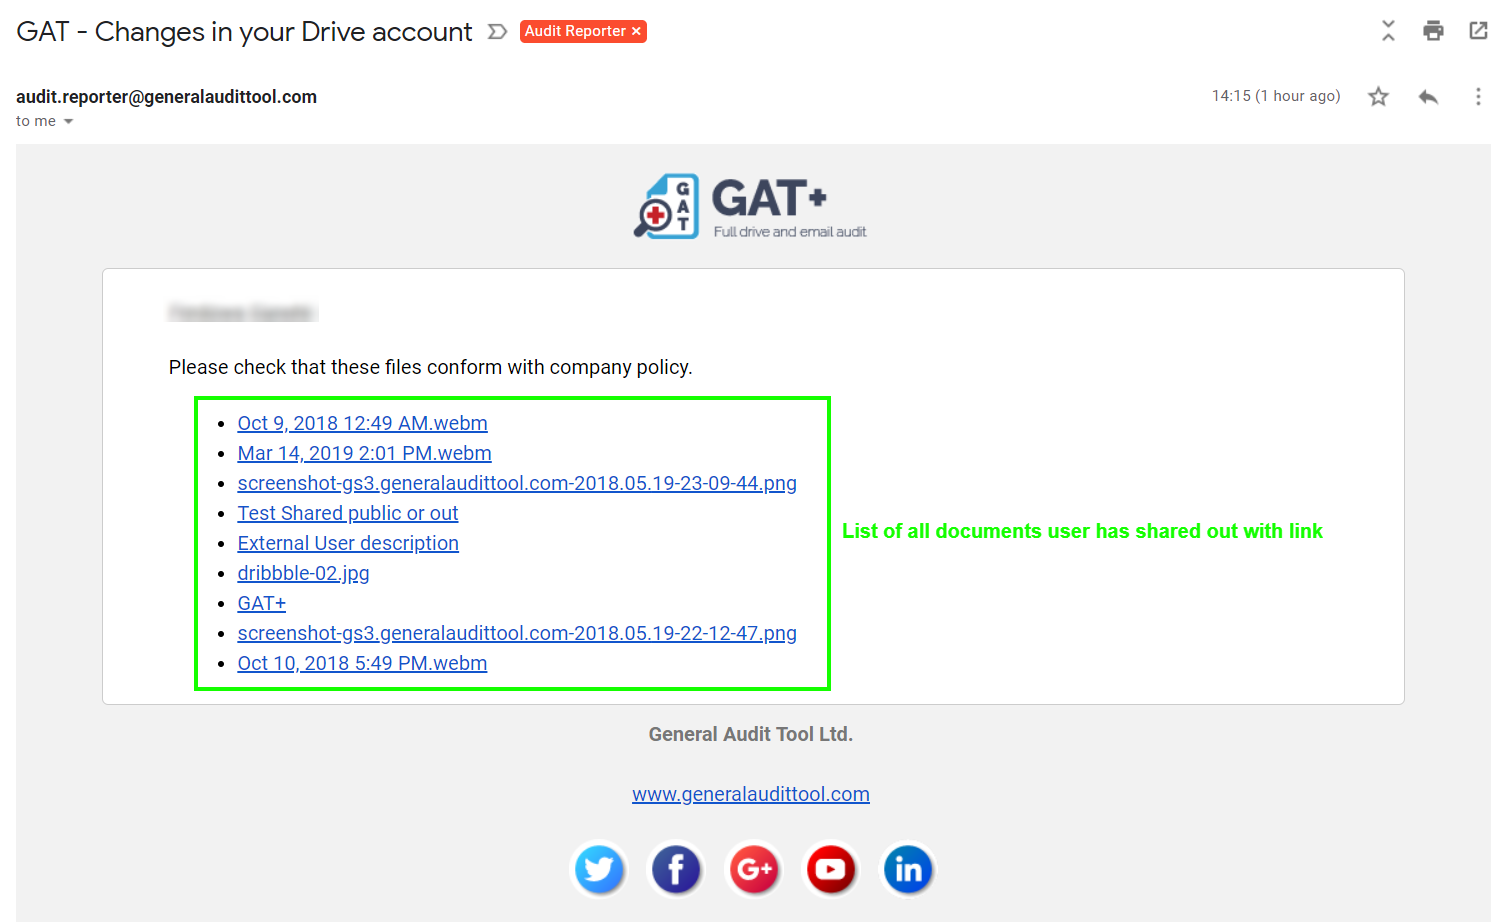 GAT+: Best Practice - How to Remove Permissions for 'Docs Shared with Link' 3